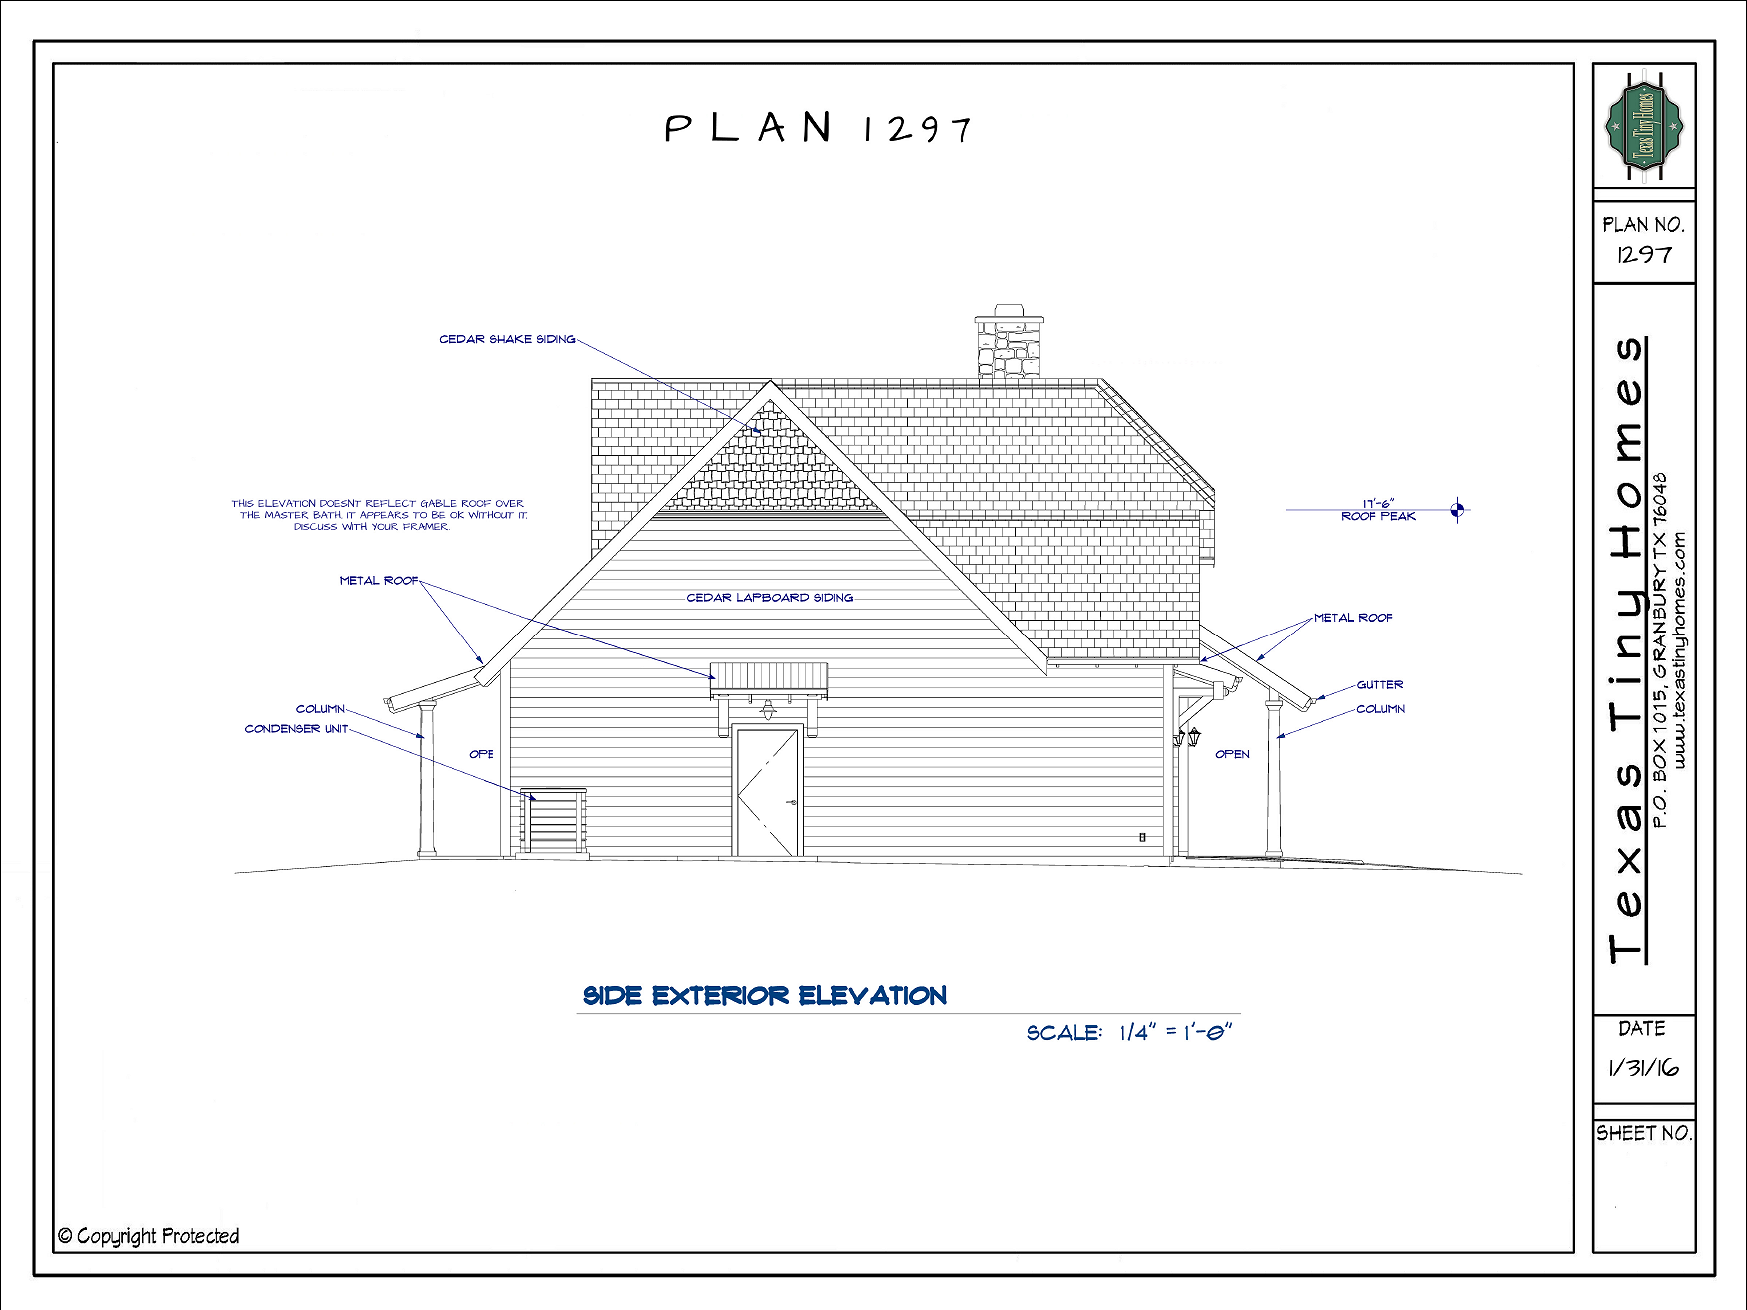 I0000H8jJ8QotgFc additionally Restaurant in addition  likewise 800 Square Feet 2 Bedrooms 1 Bathroom Country House Plans 0 Garage 15740 also Tiny Texas Houses Floor Plans. on tiny house village in texas